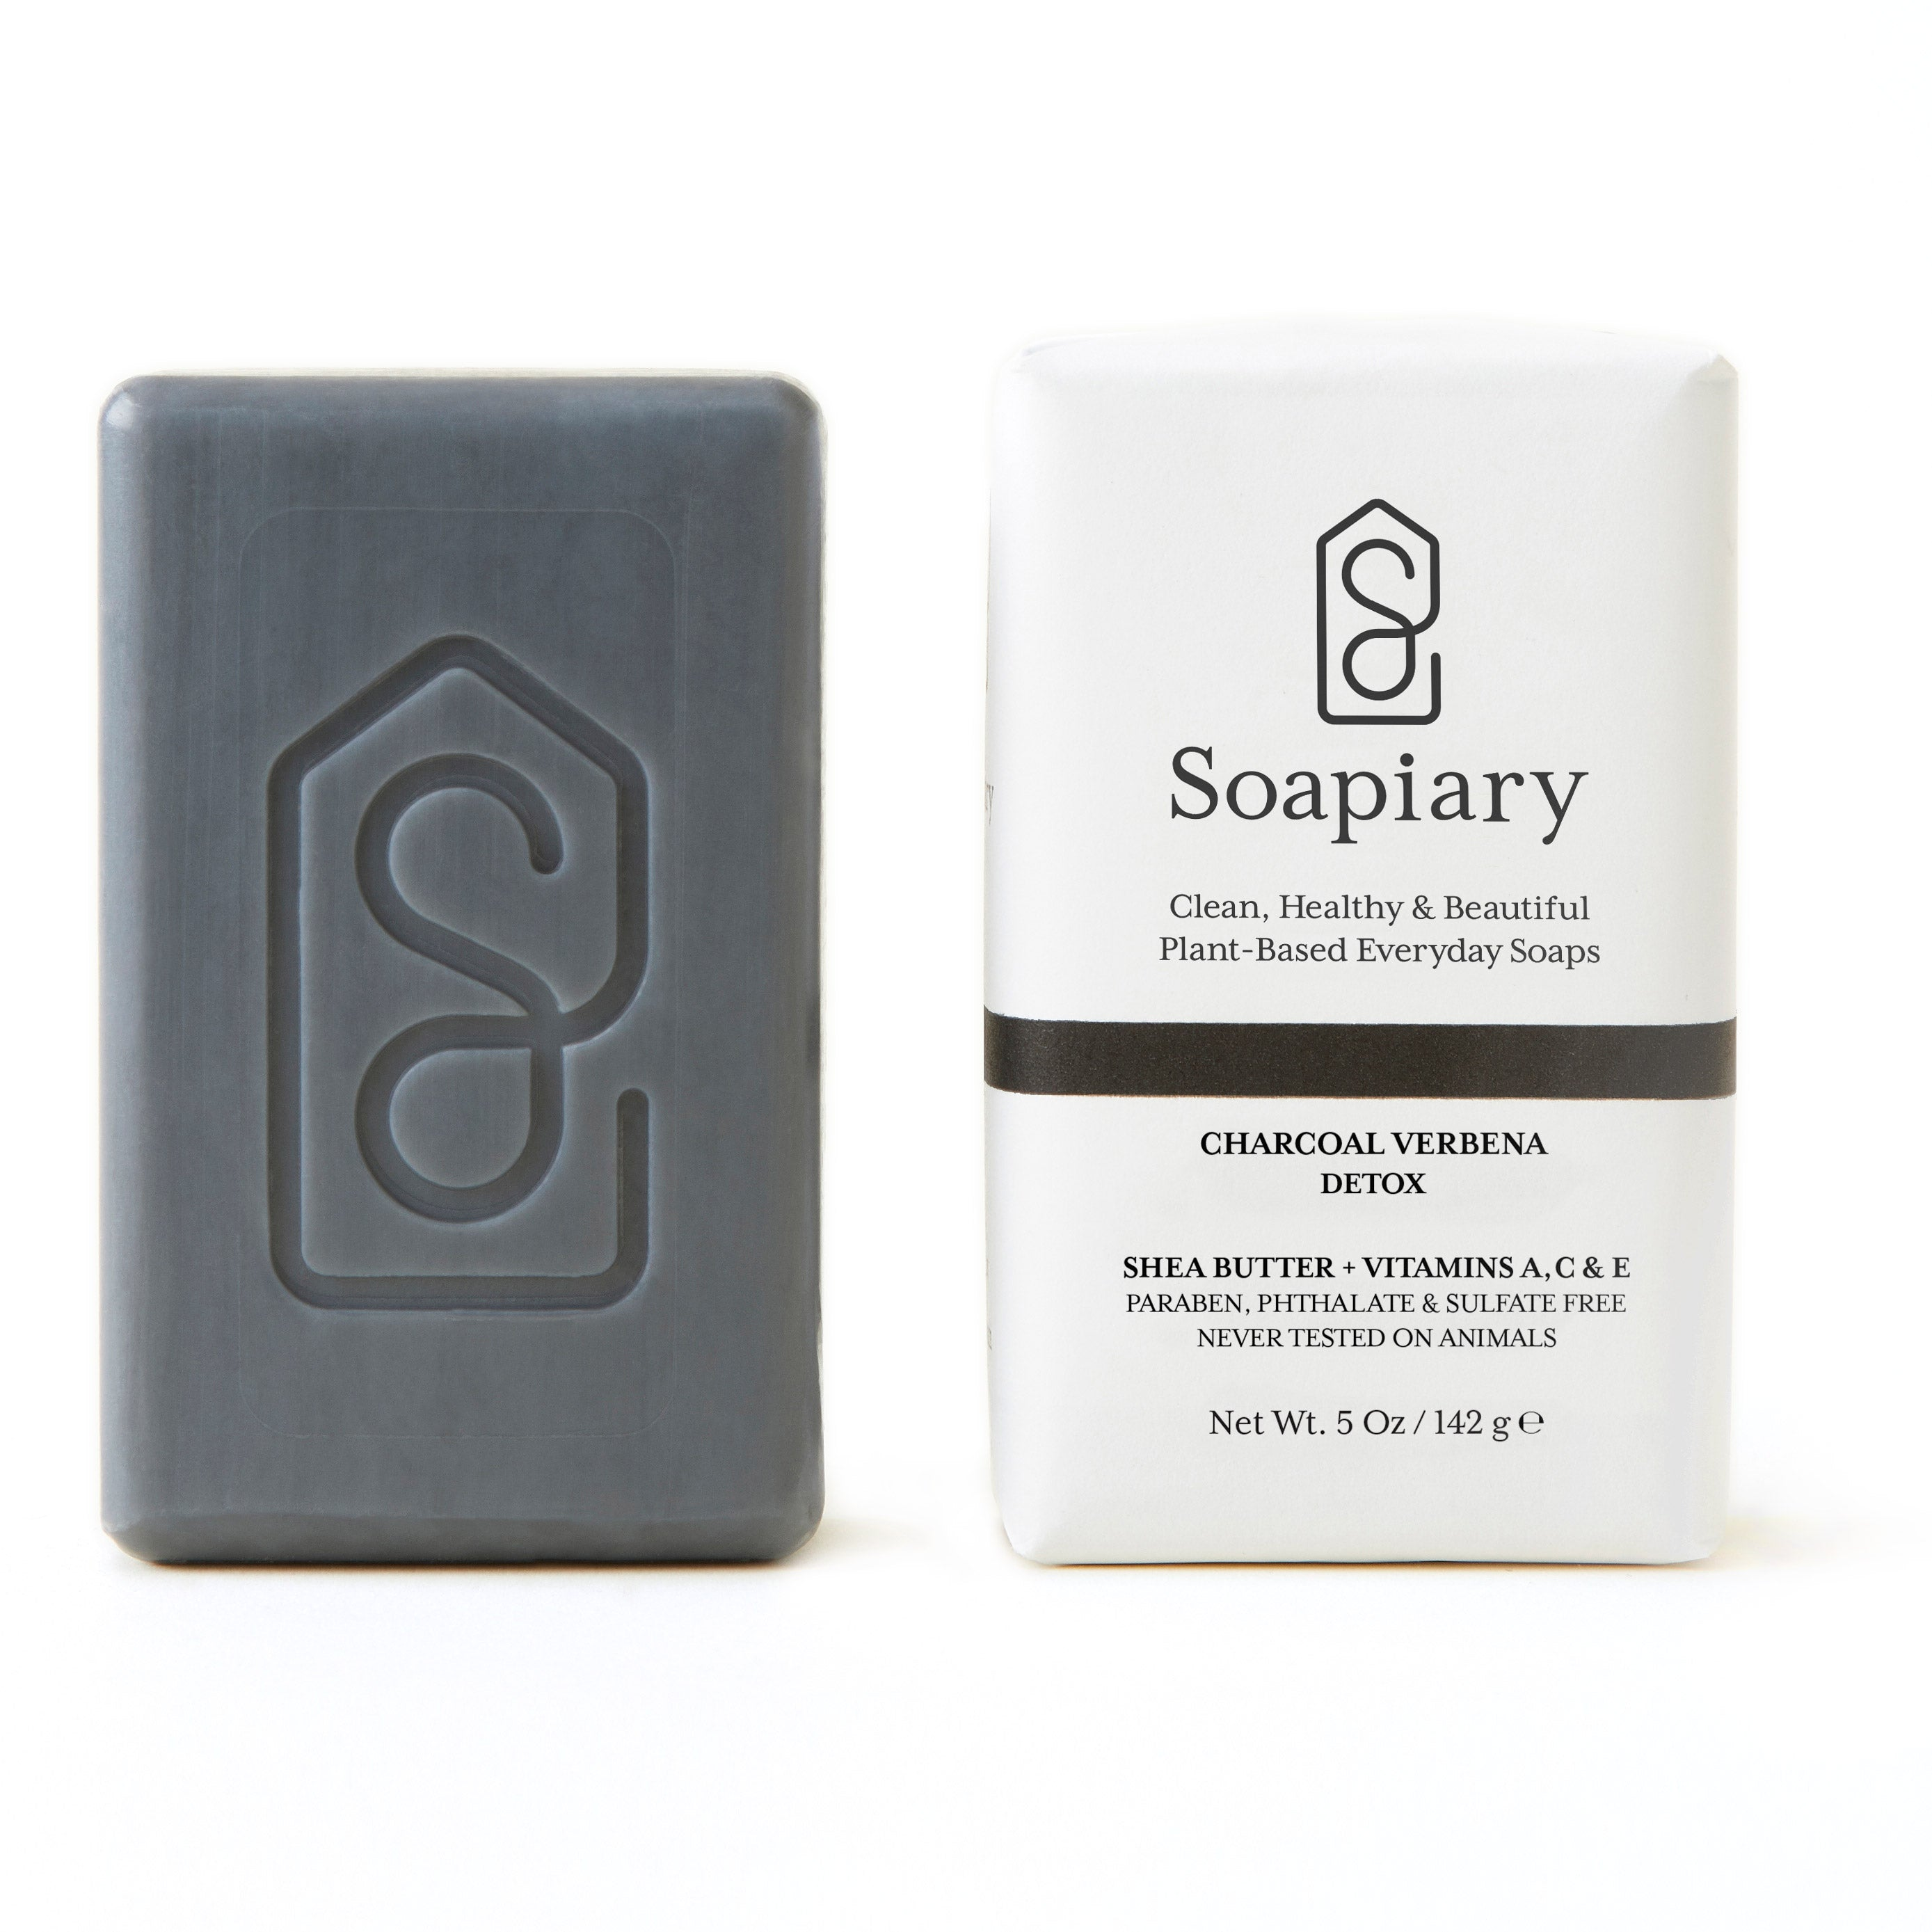 Soapiary Charcoal Verbena Detox Bar Soap, 5oz: Grey-colored, unwrapped soap bar standing next to wrapped soap bar to show how it looks packaged. Rectangular soap is wrapped in white paper packaging with black lettering and black stripe.